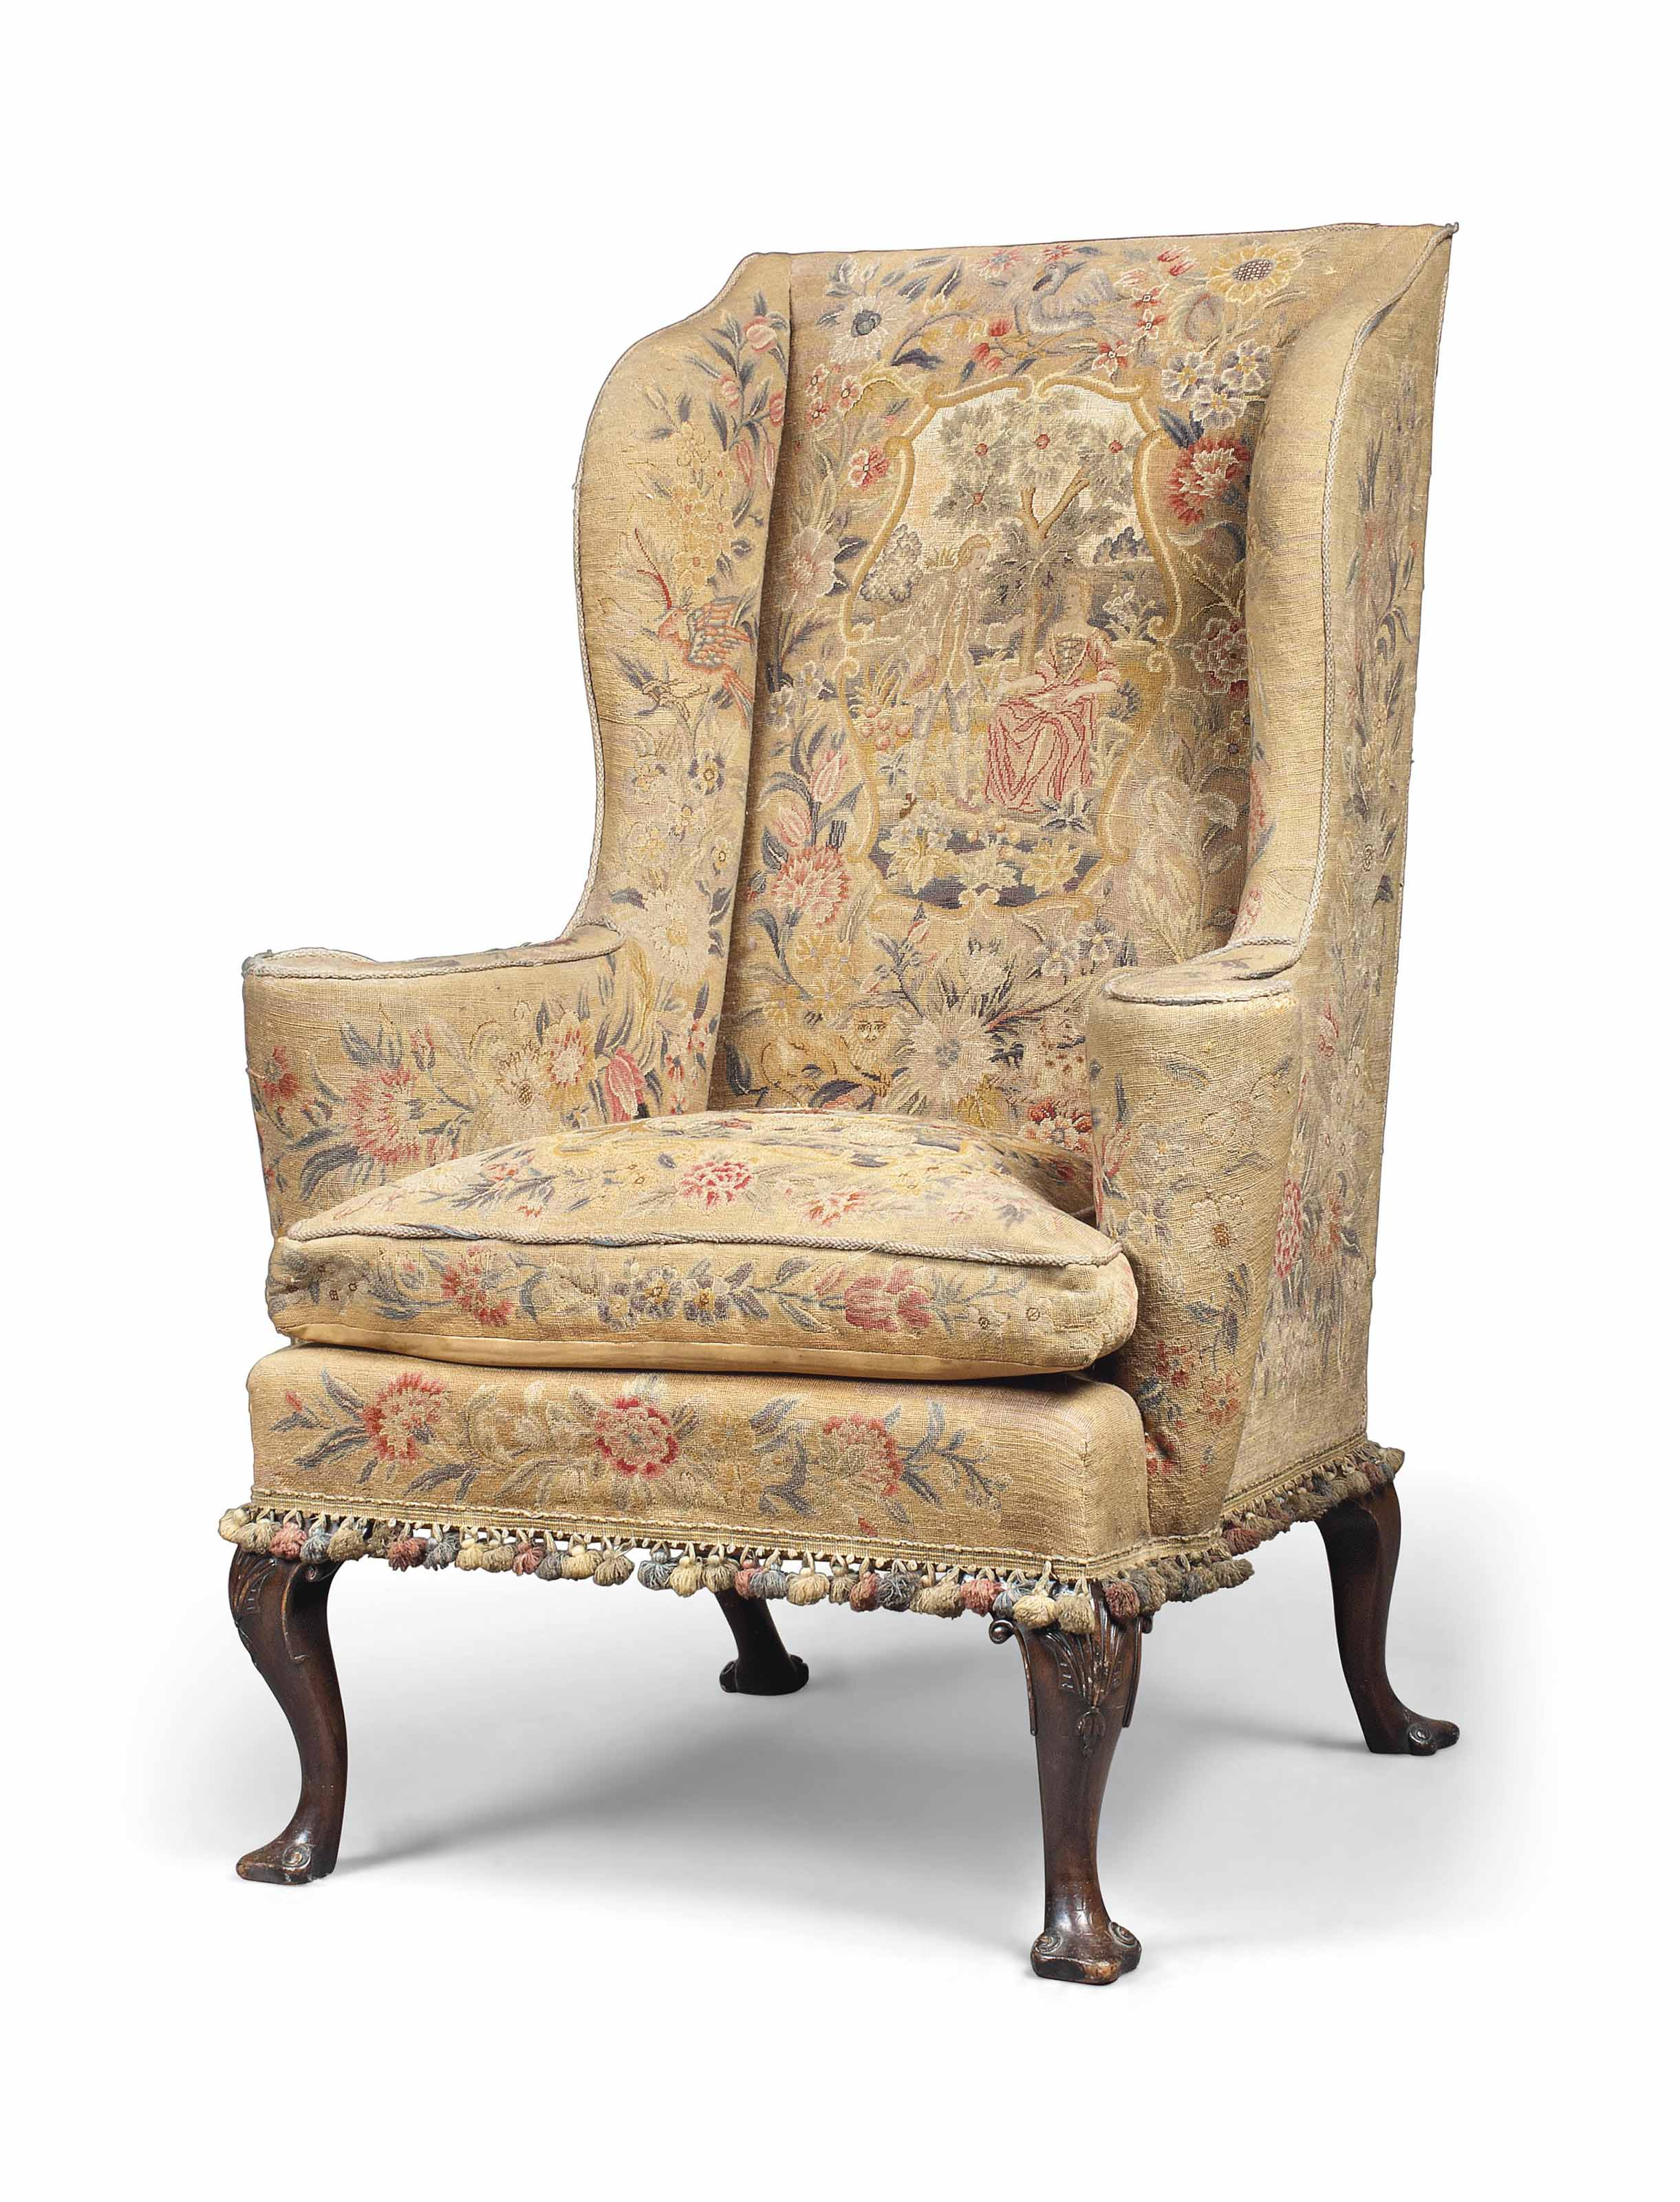 A FLORAL NEEDLEWORK-COVERED WING ARMCHAIR